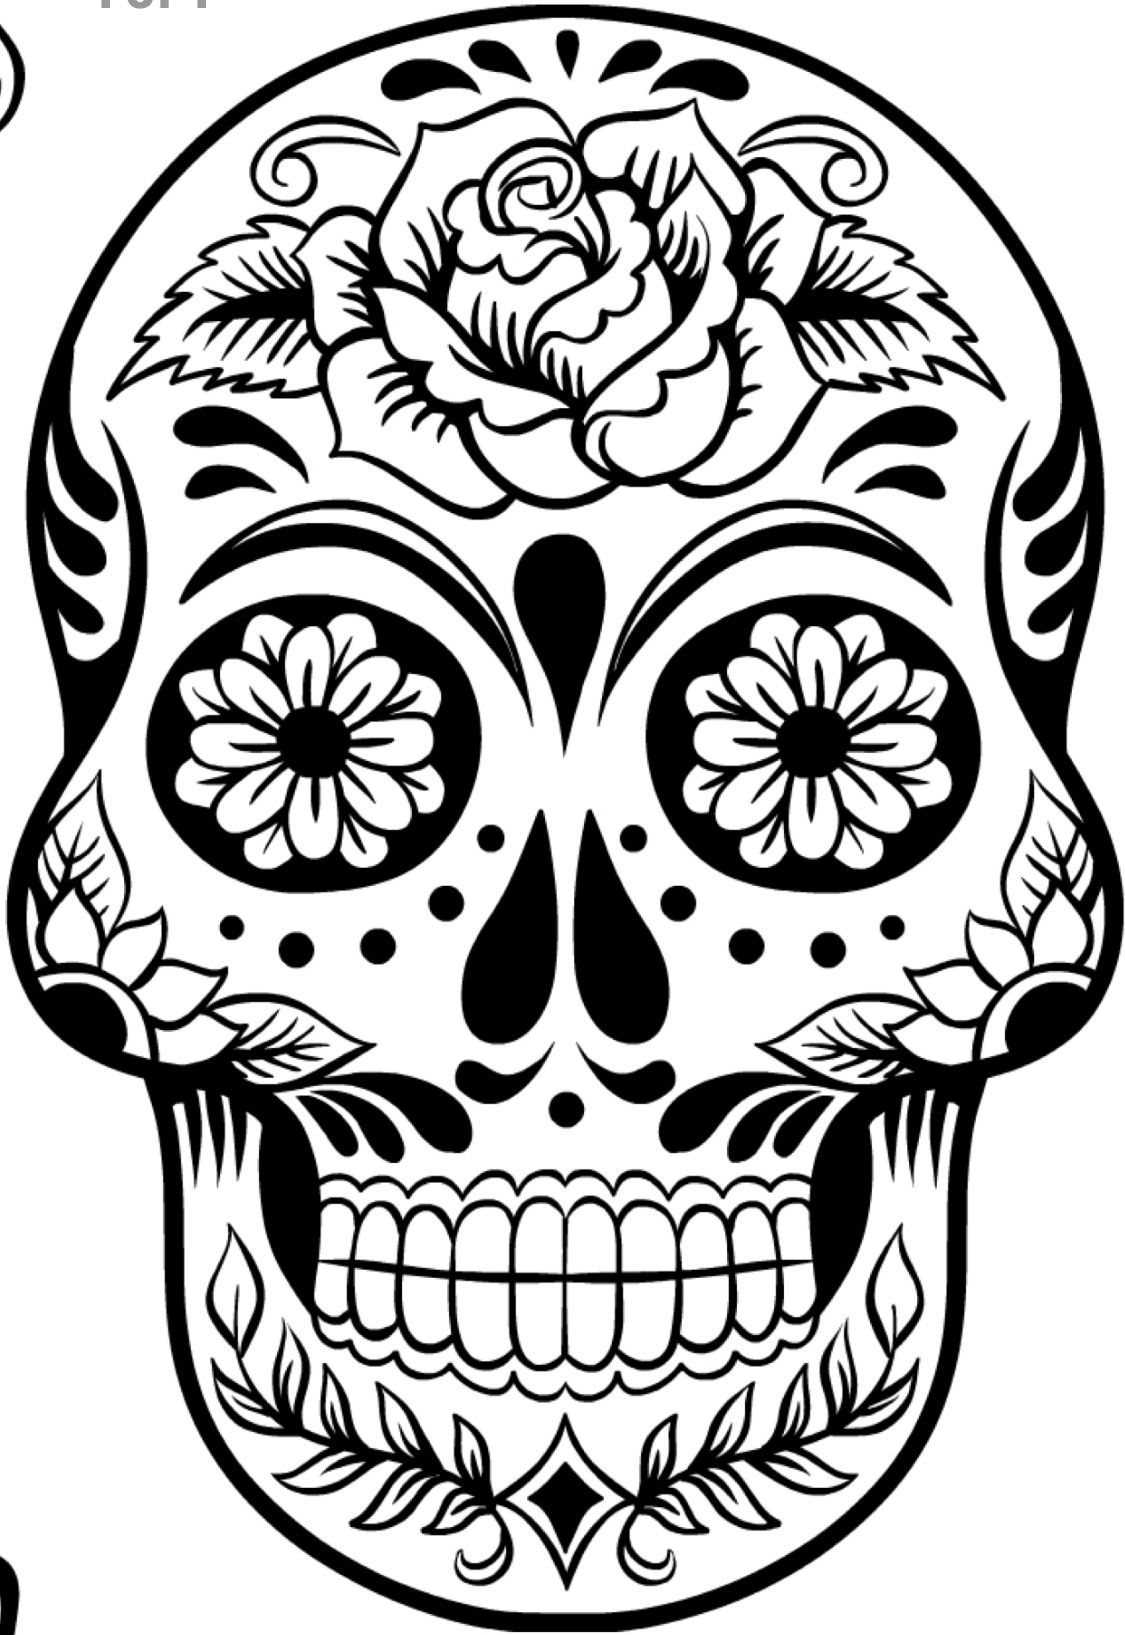 sugar skull template sugar skull a great pattern for silk painting stamping sugar skull template